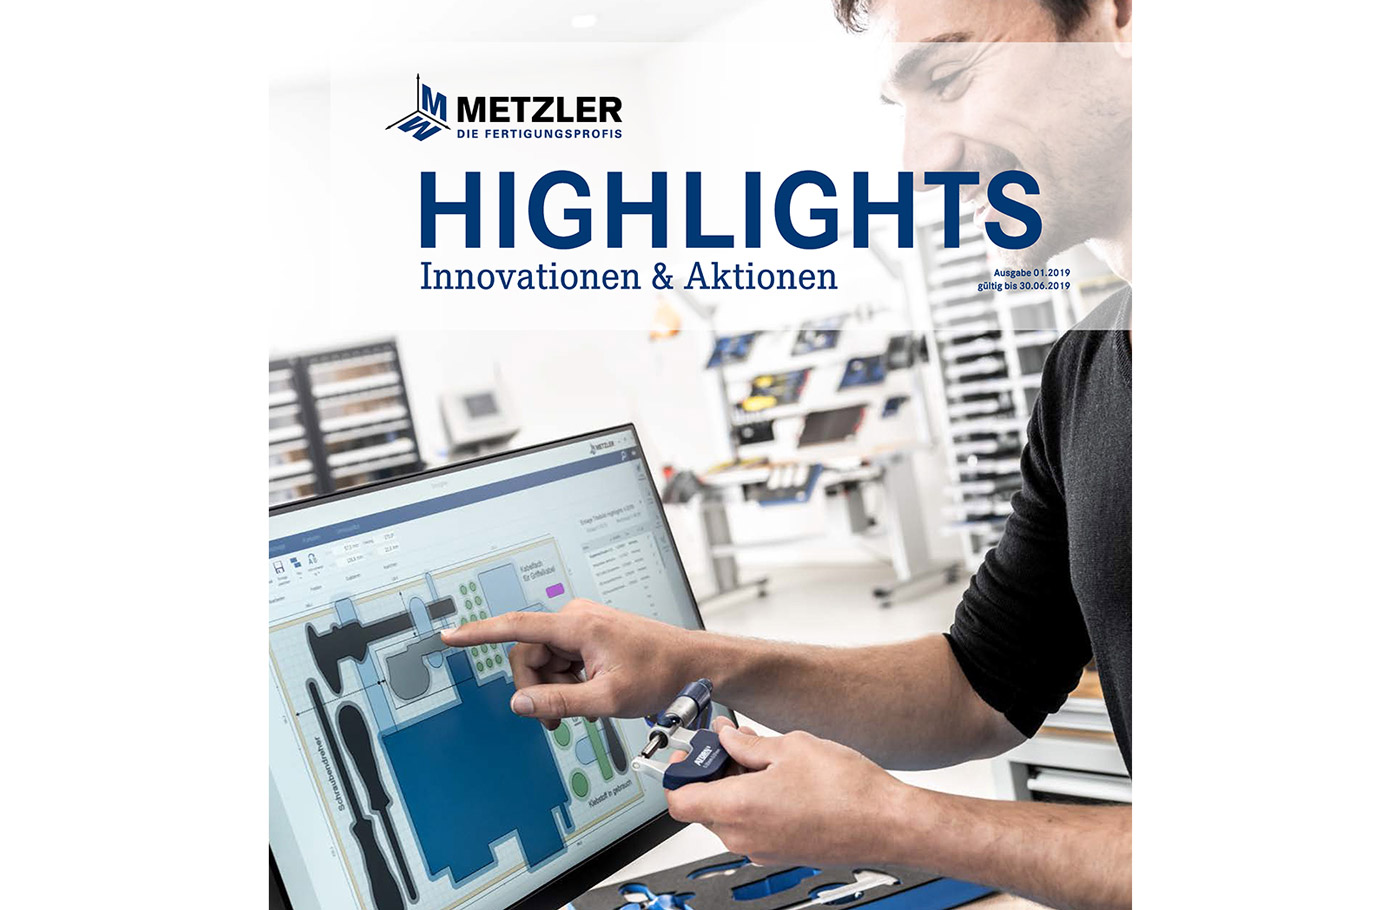 Metzler Innovationsforum Blog - neues Kundenmagazin